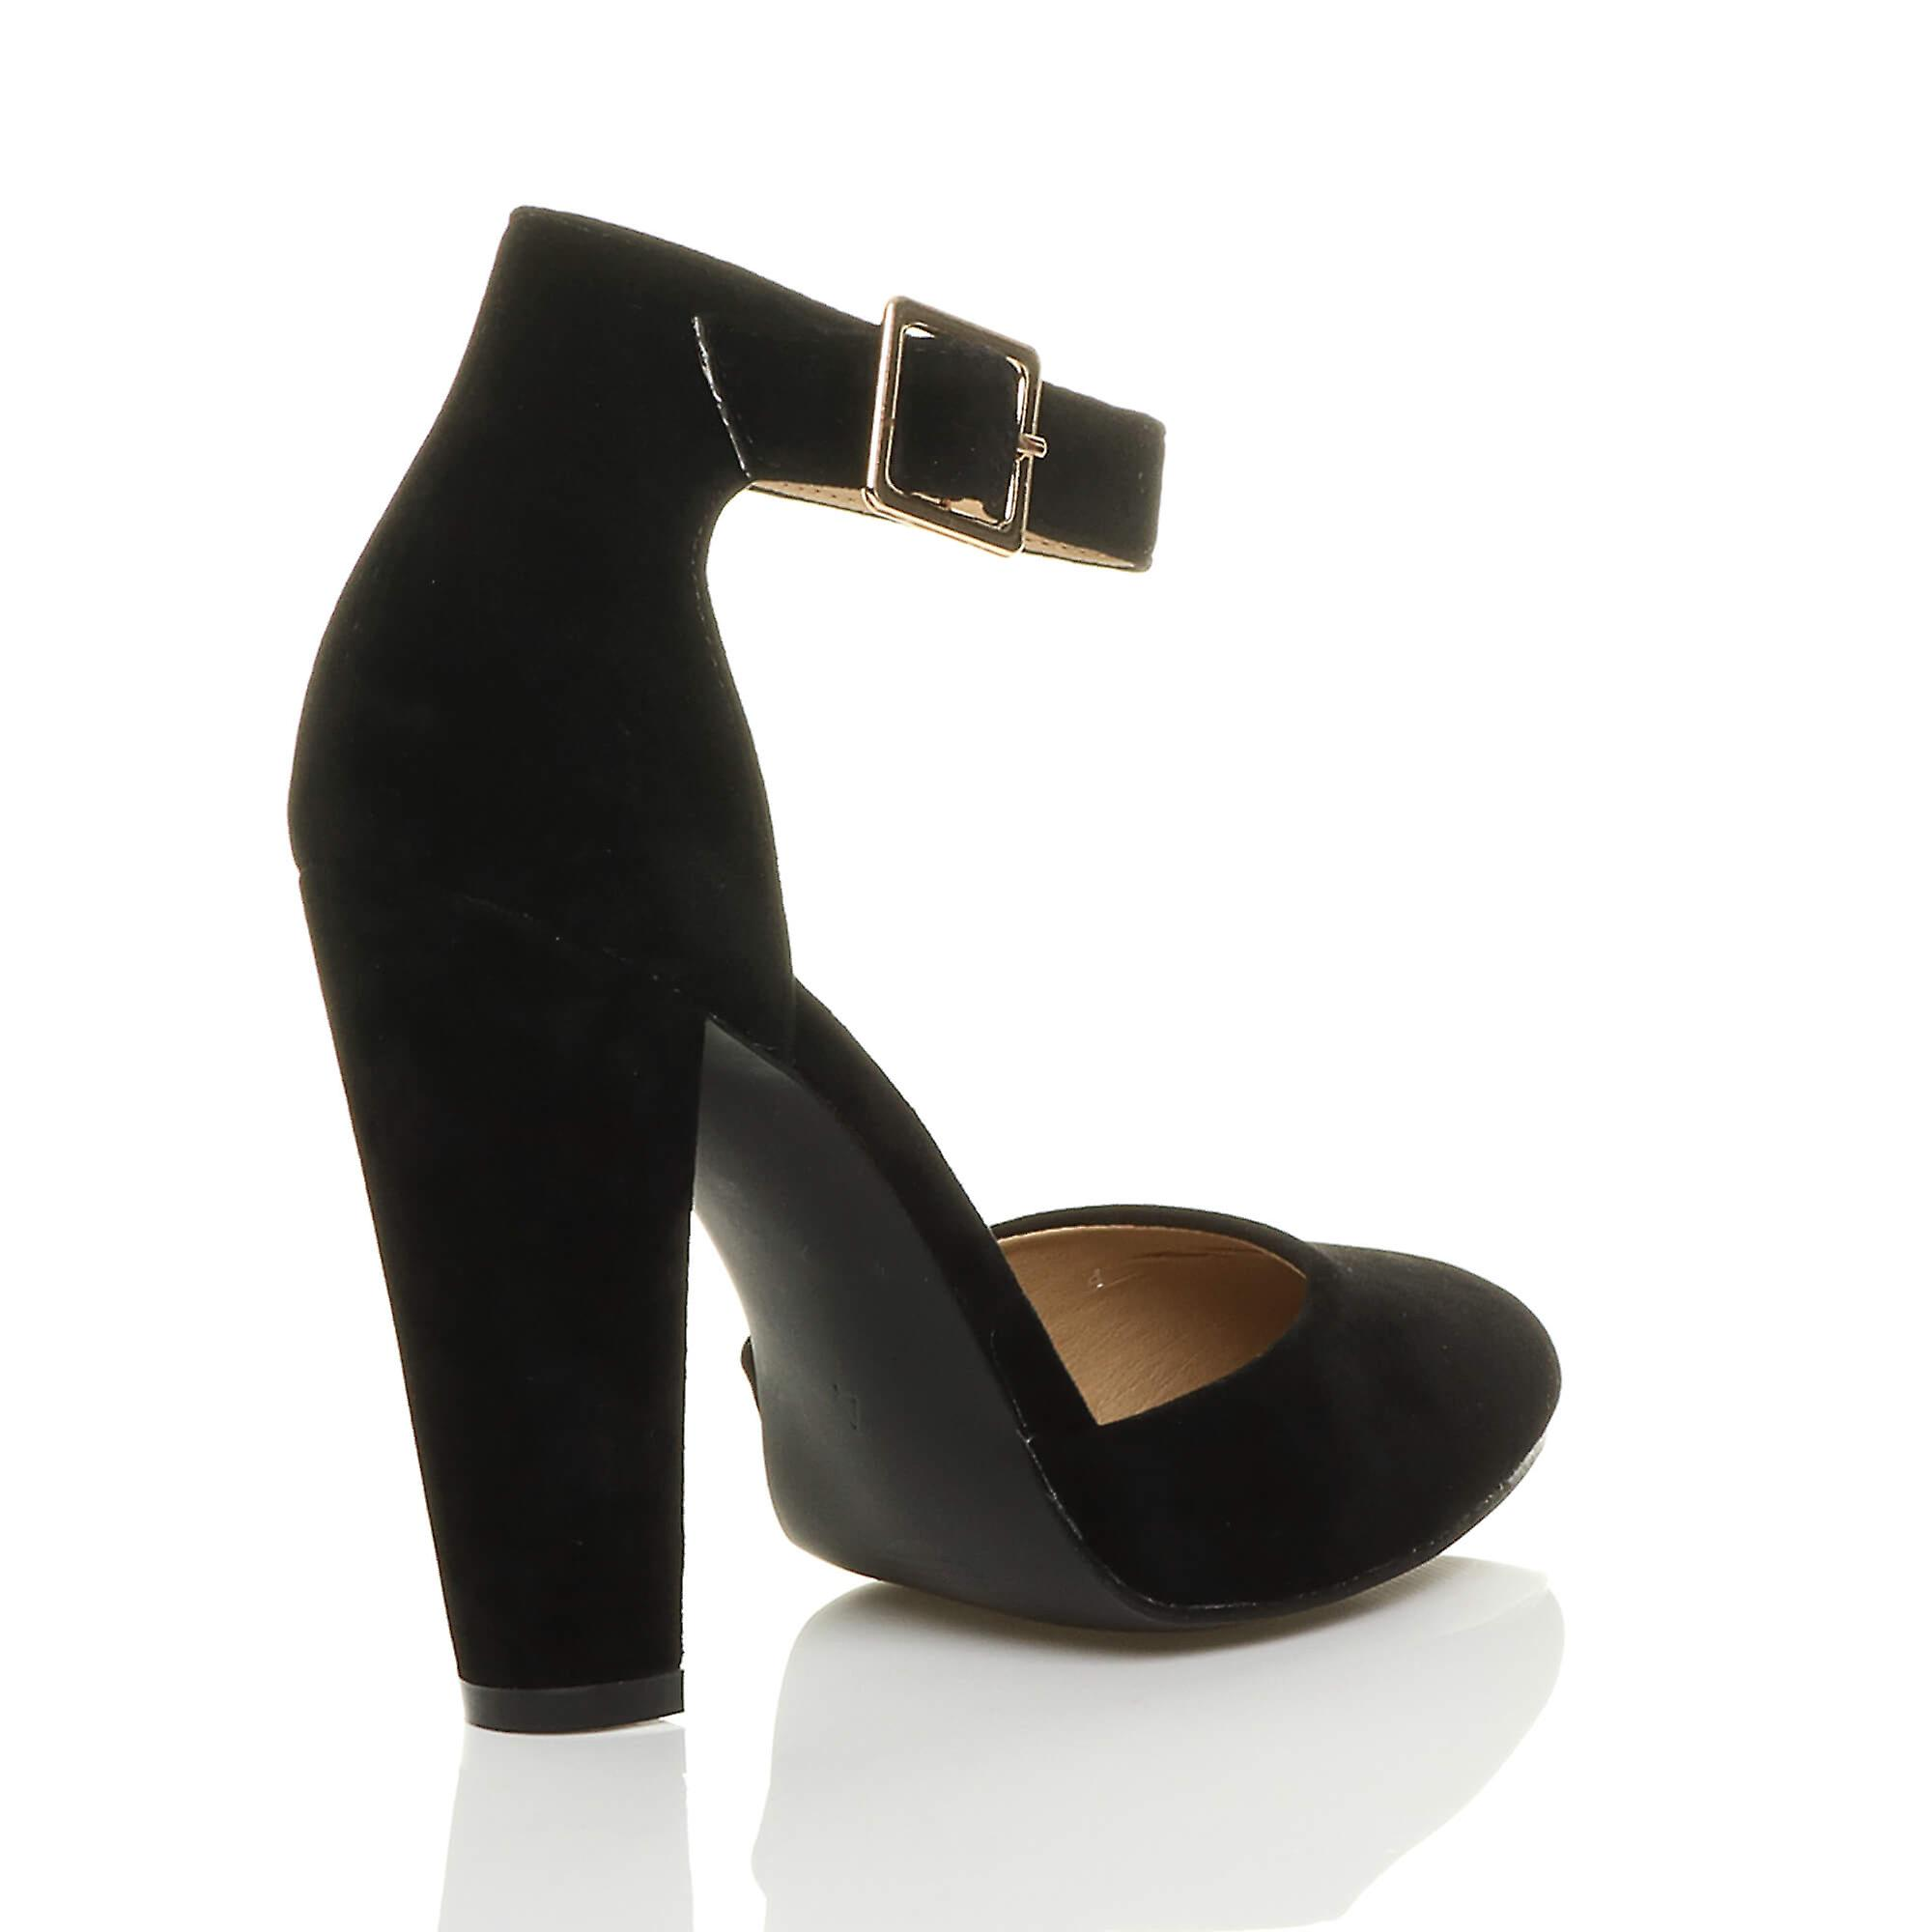 Ajvani Womens High Block Heel Cuff Ankle Strap Buckle Pointed Court Shoes Pumps Sandals